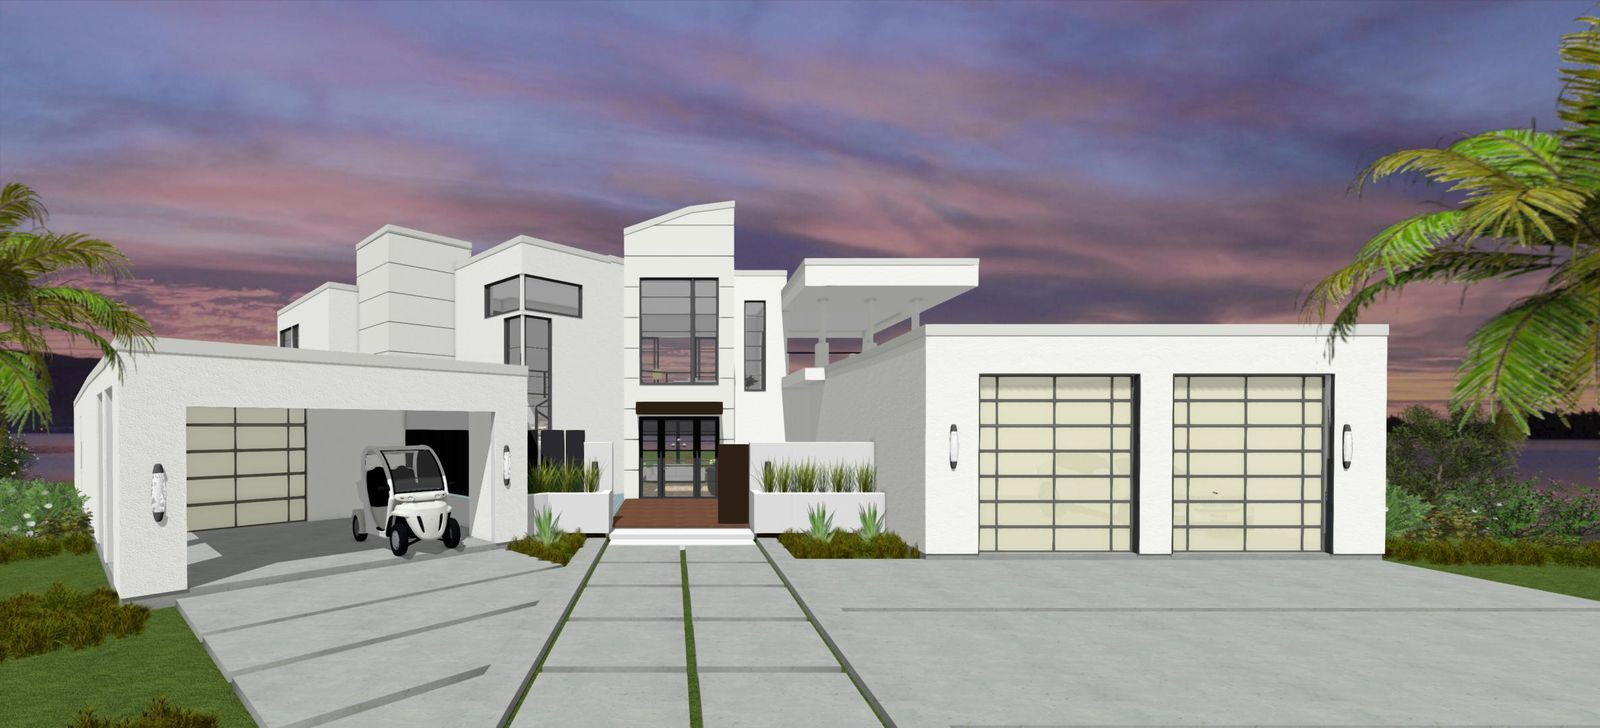 An exterior rendering of the Trousdale home.